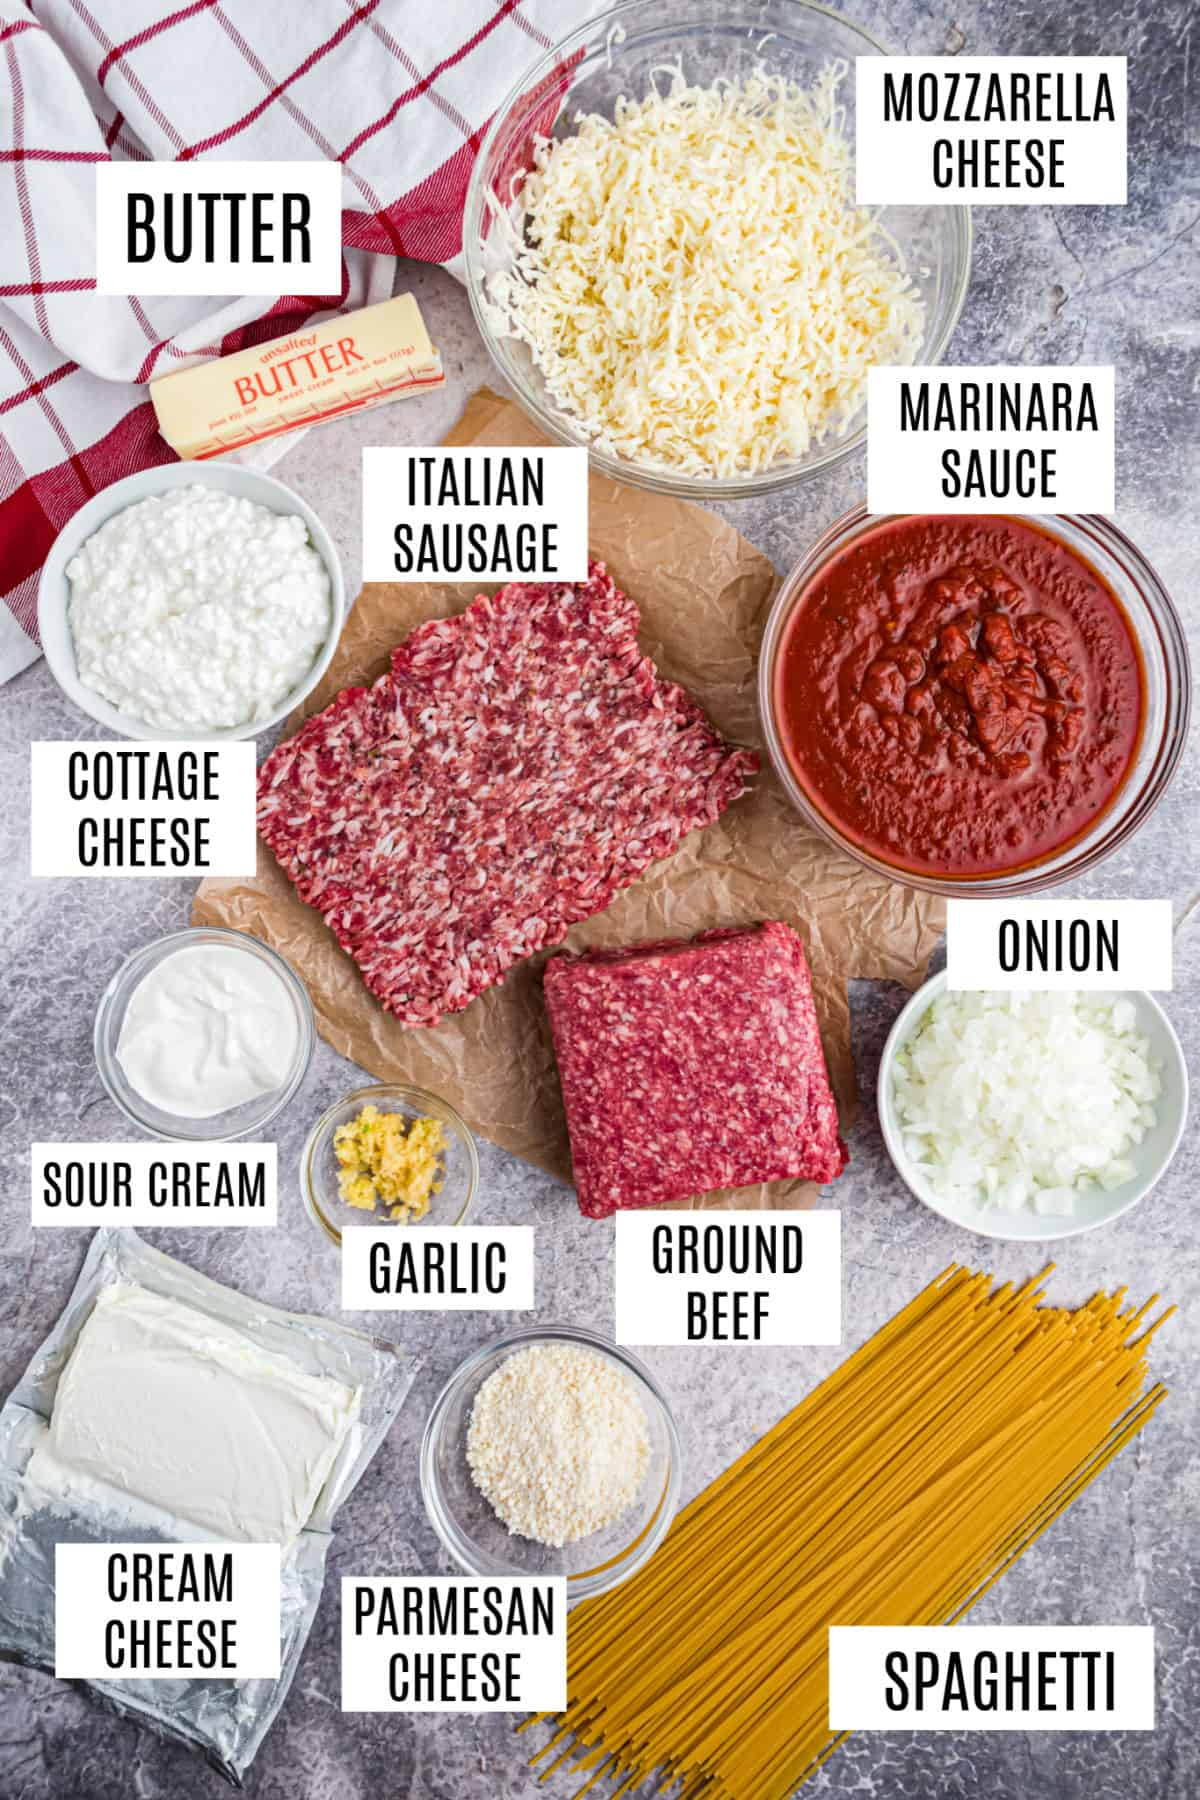 Ingredients needed to make a million dollar spaghetti casserole.